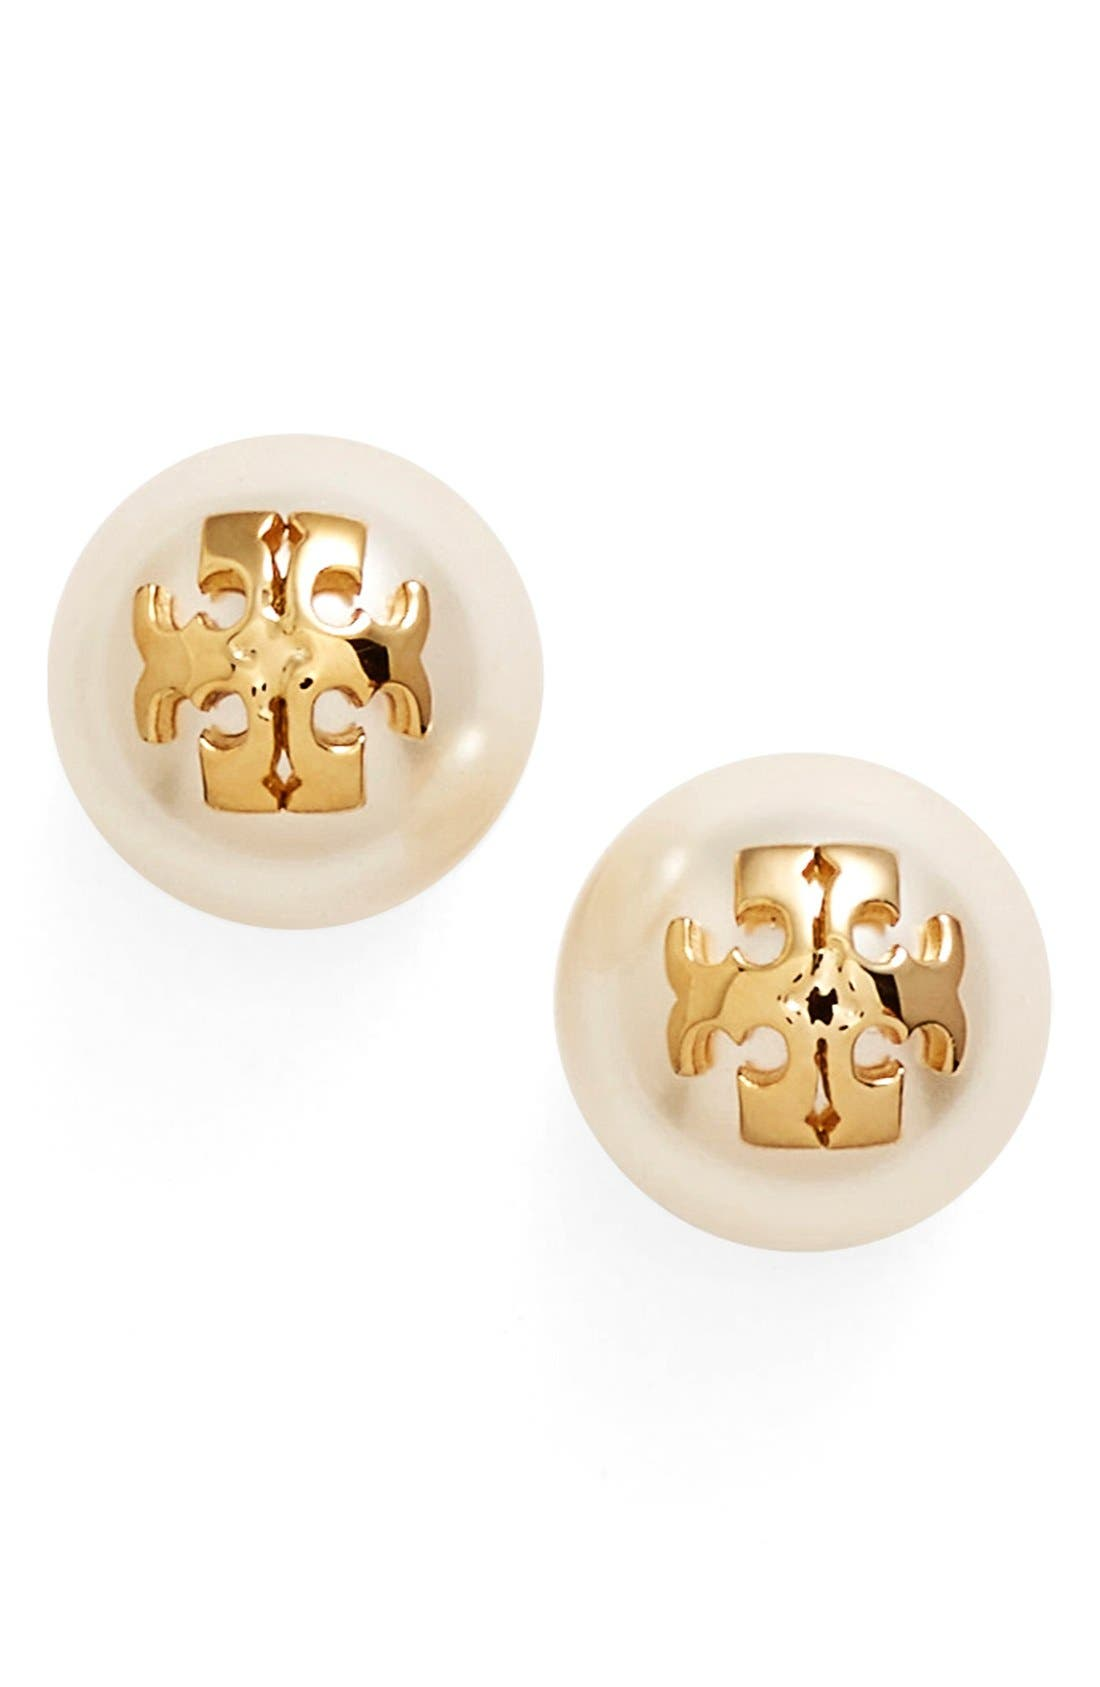 Main Image - Tory Burch Swarovski Crystal Pearl Logo Stud Earrings